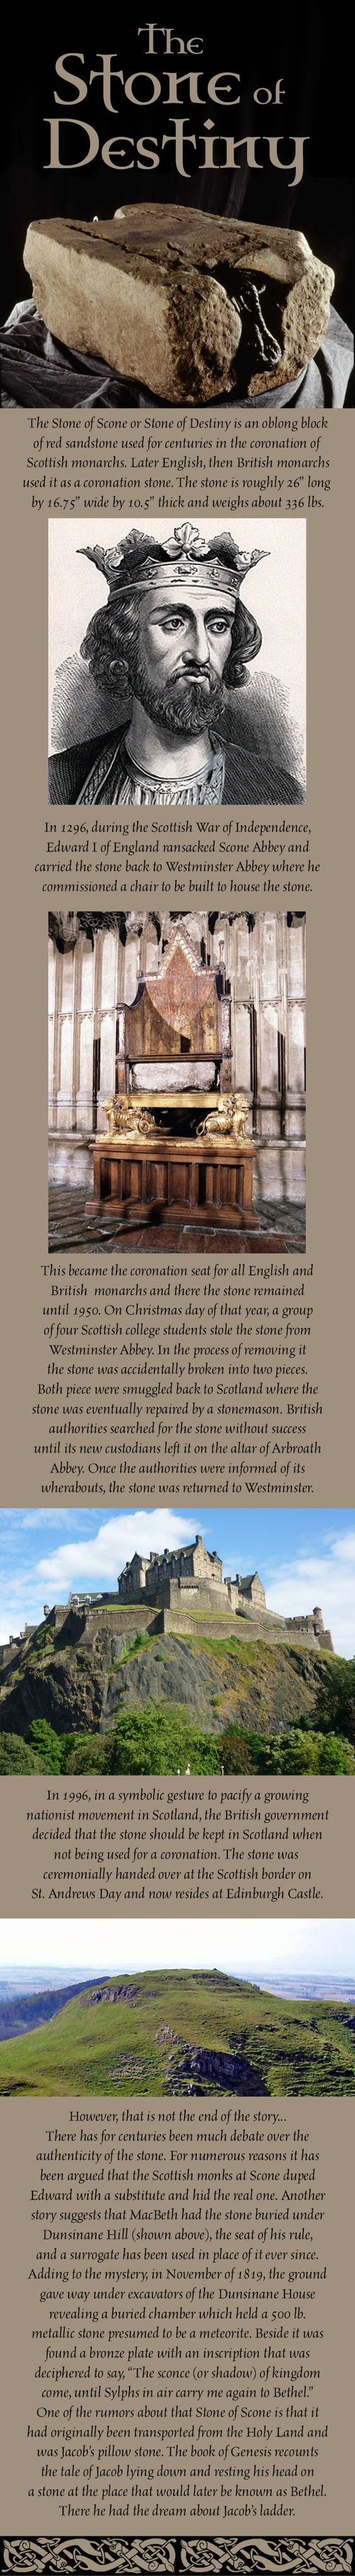 The story of Scotland's Stone of Scone.